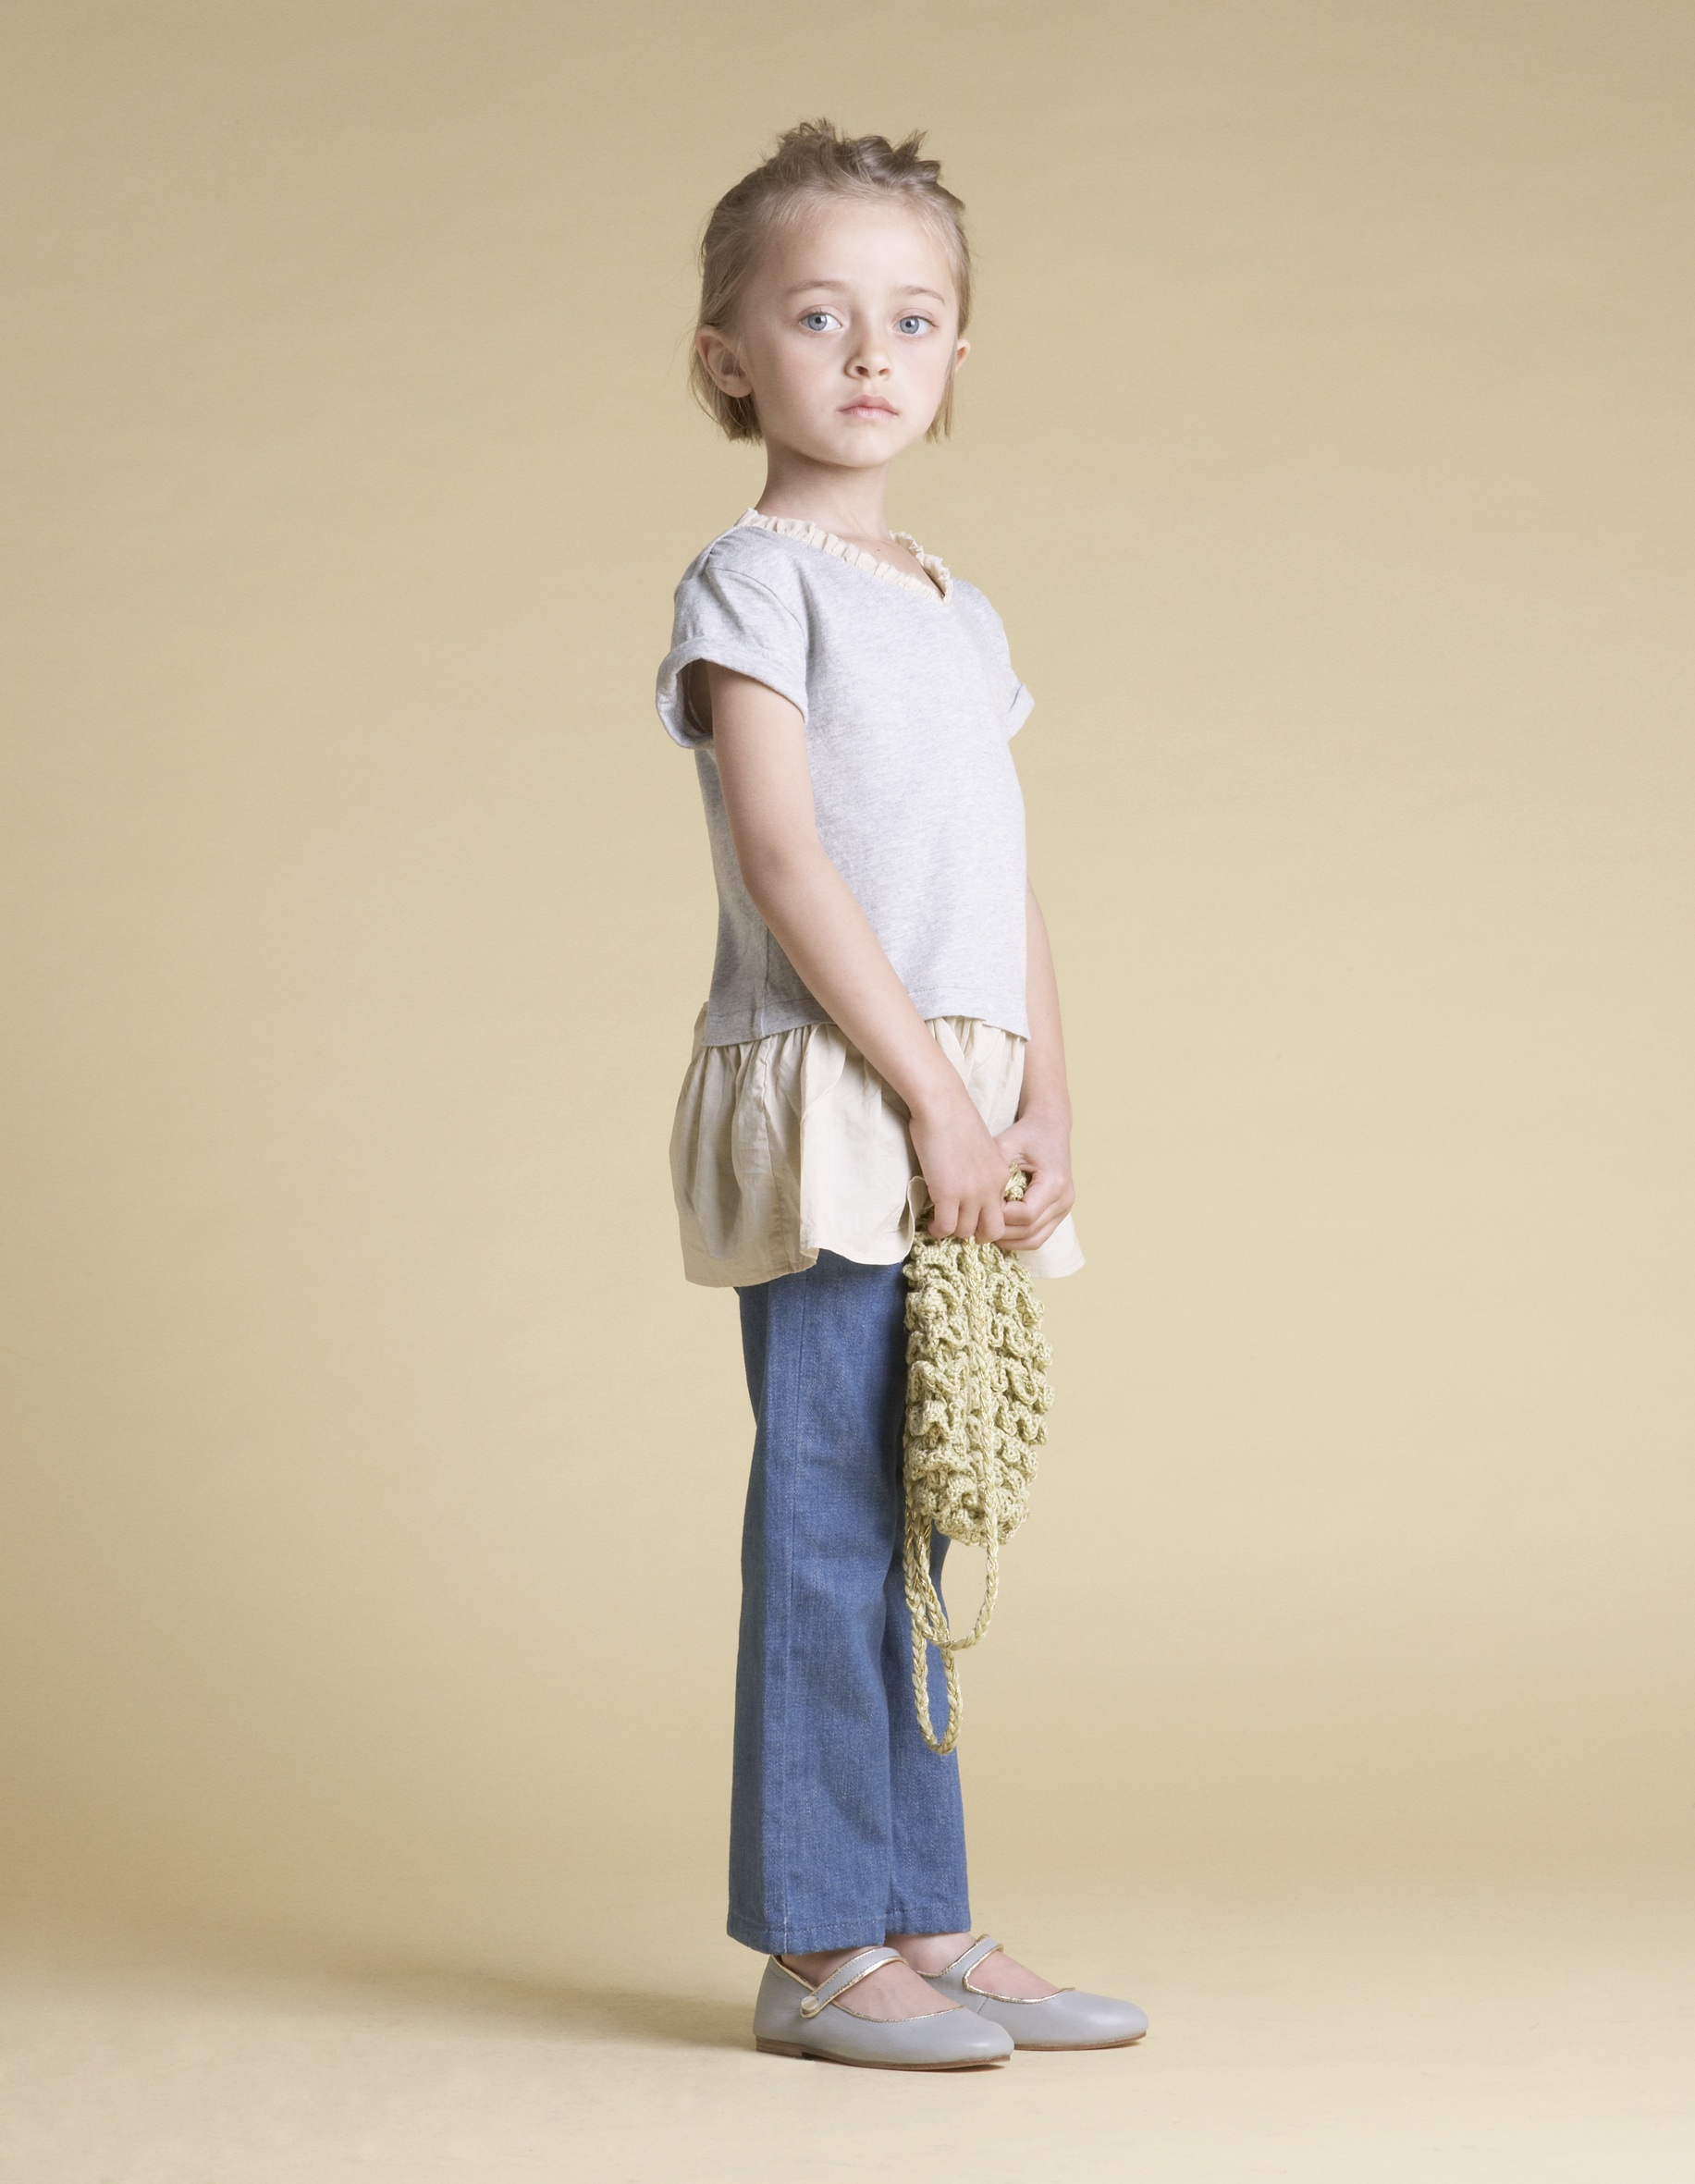 Children Fashion Models - Ask Jeeves - Ask.com - What's Your Question?